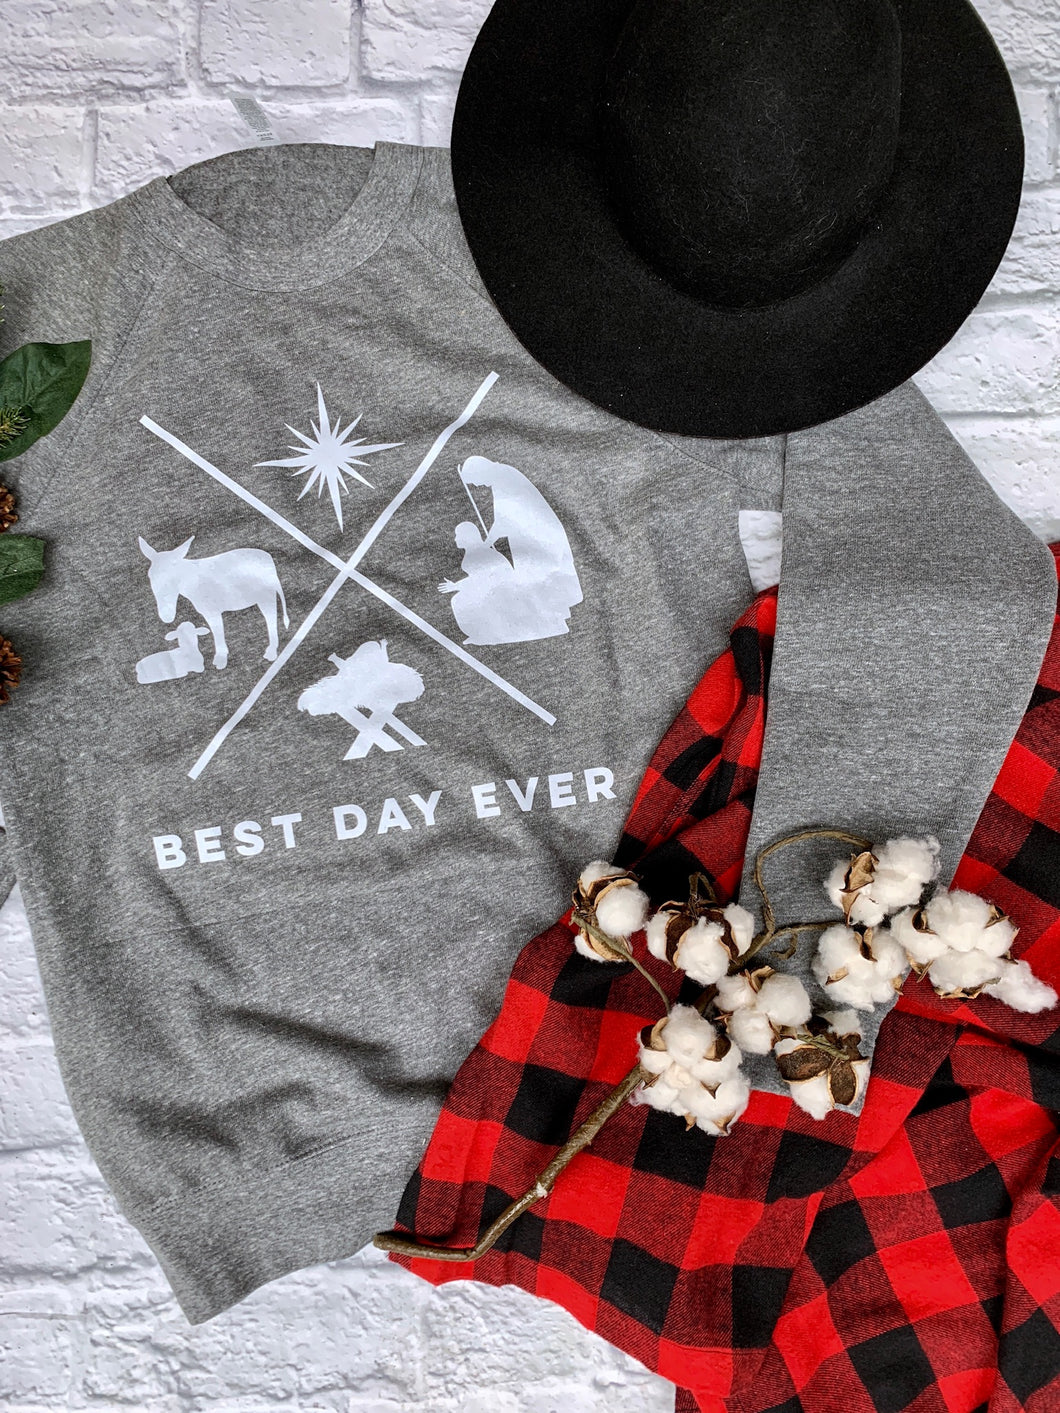 Best Day Ever - Sweatshirt